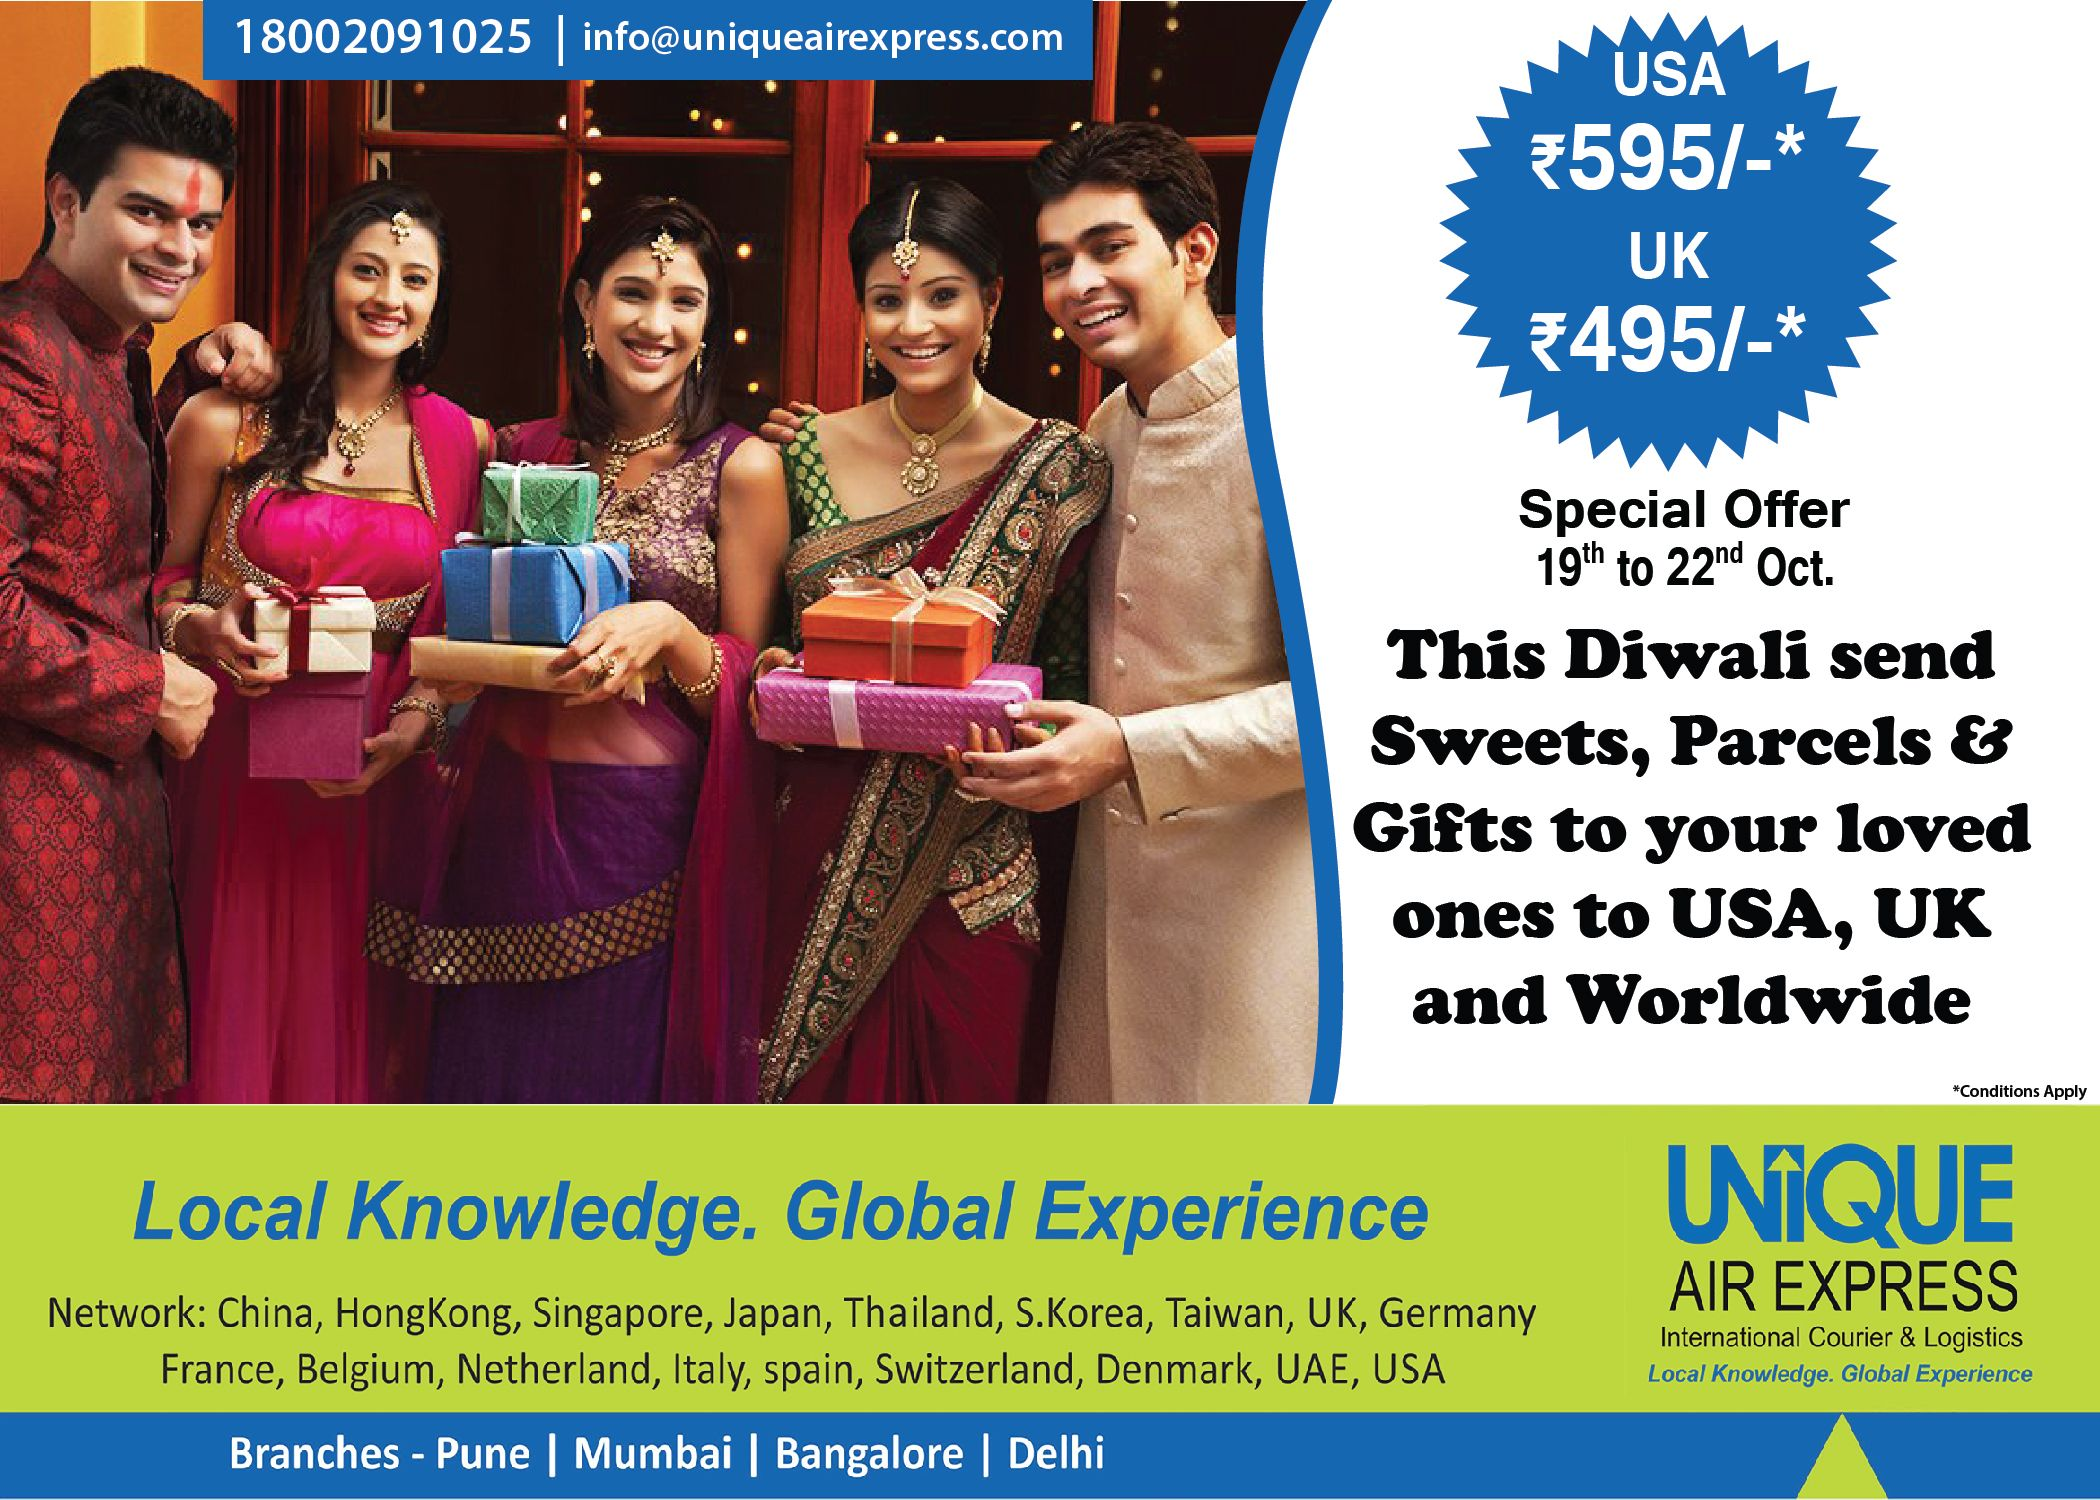 Send Diwali Gifts, Sweets and Faral to loved ones in USA